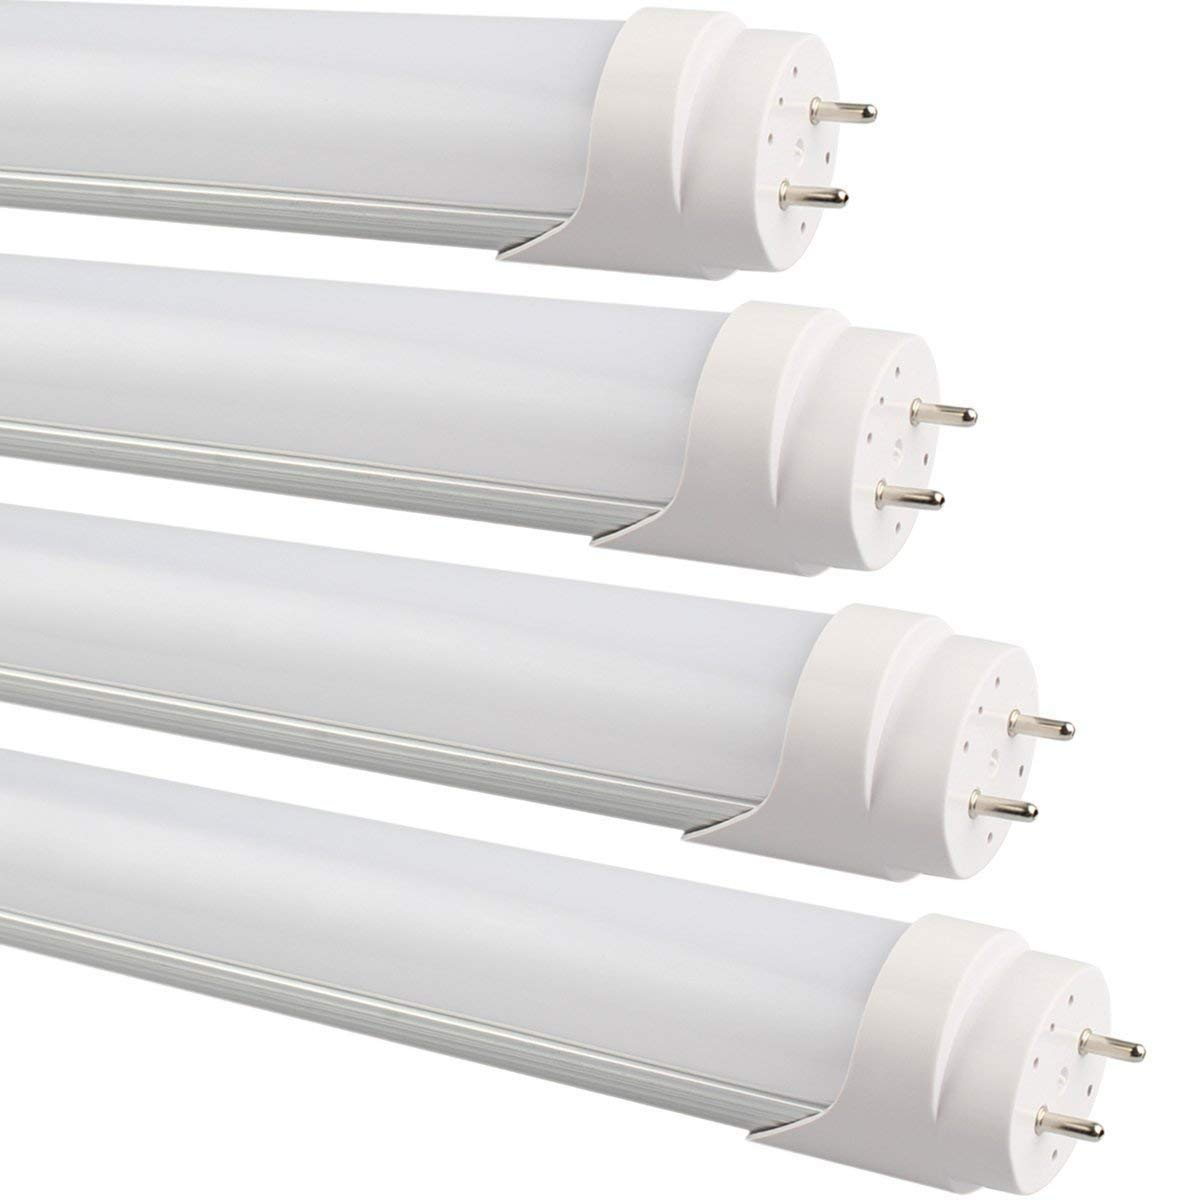 B2ocled 2FT T8 LED Tube Light 9 Watt 6500K Dual End Powered Cool White Glow Frosted Cover G13 Fluorescent Light Bulbs Replacement 4 Pack